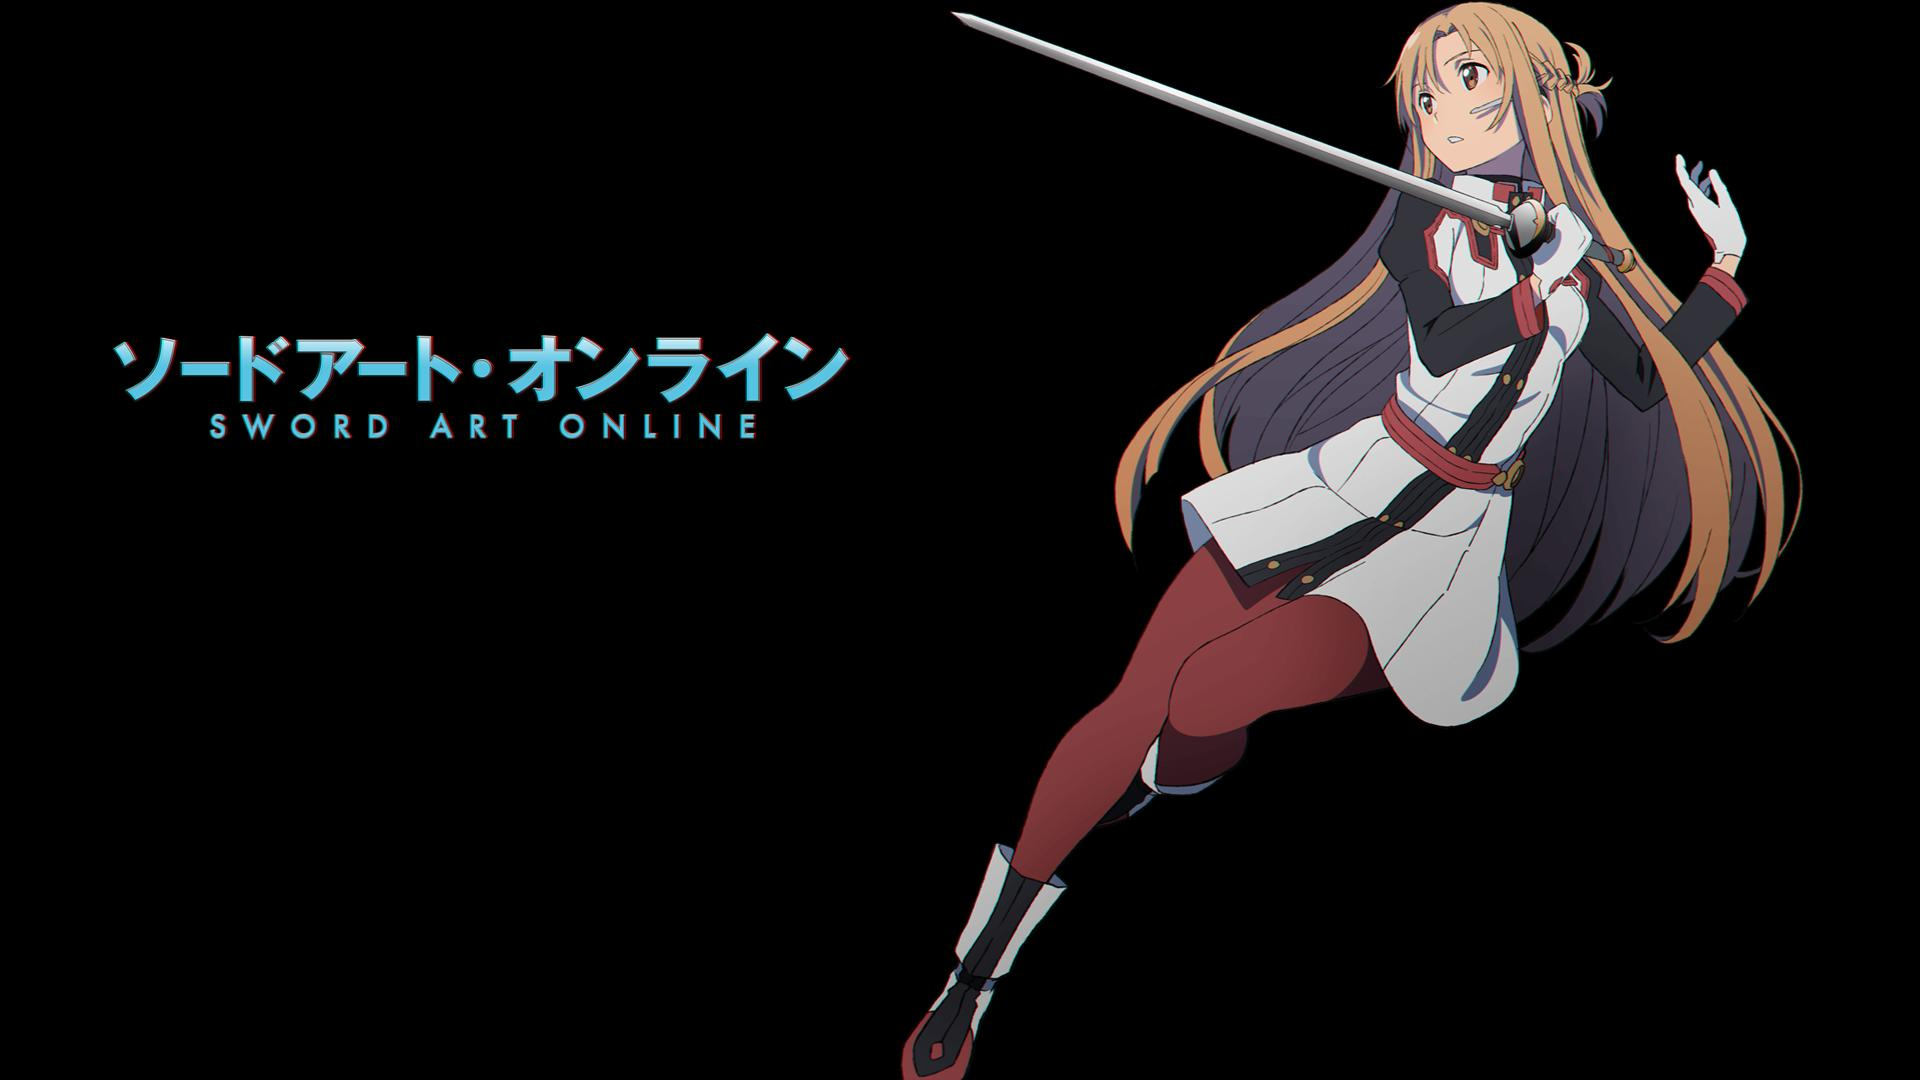 sword art online movie - photo #24